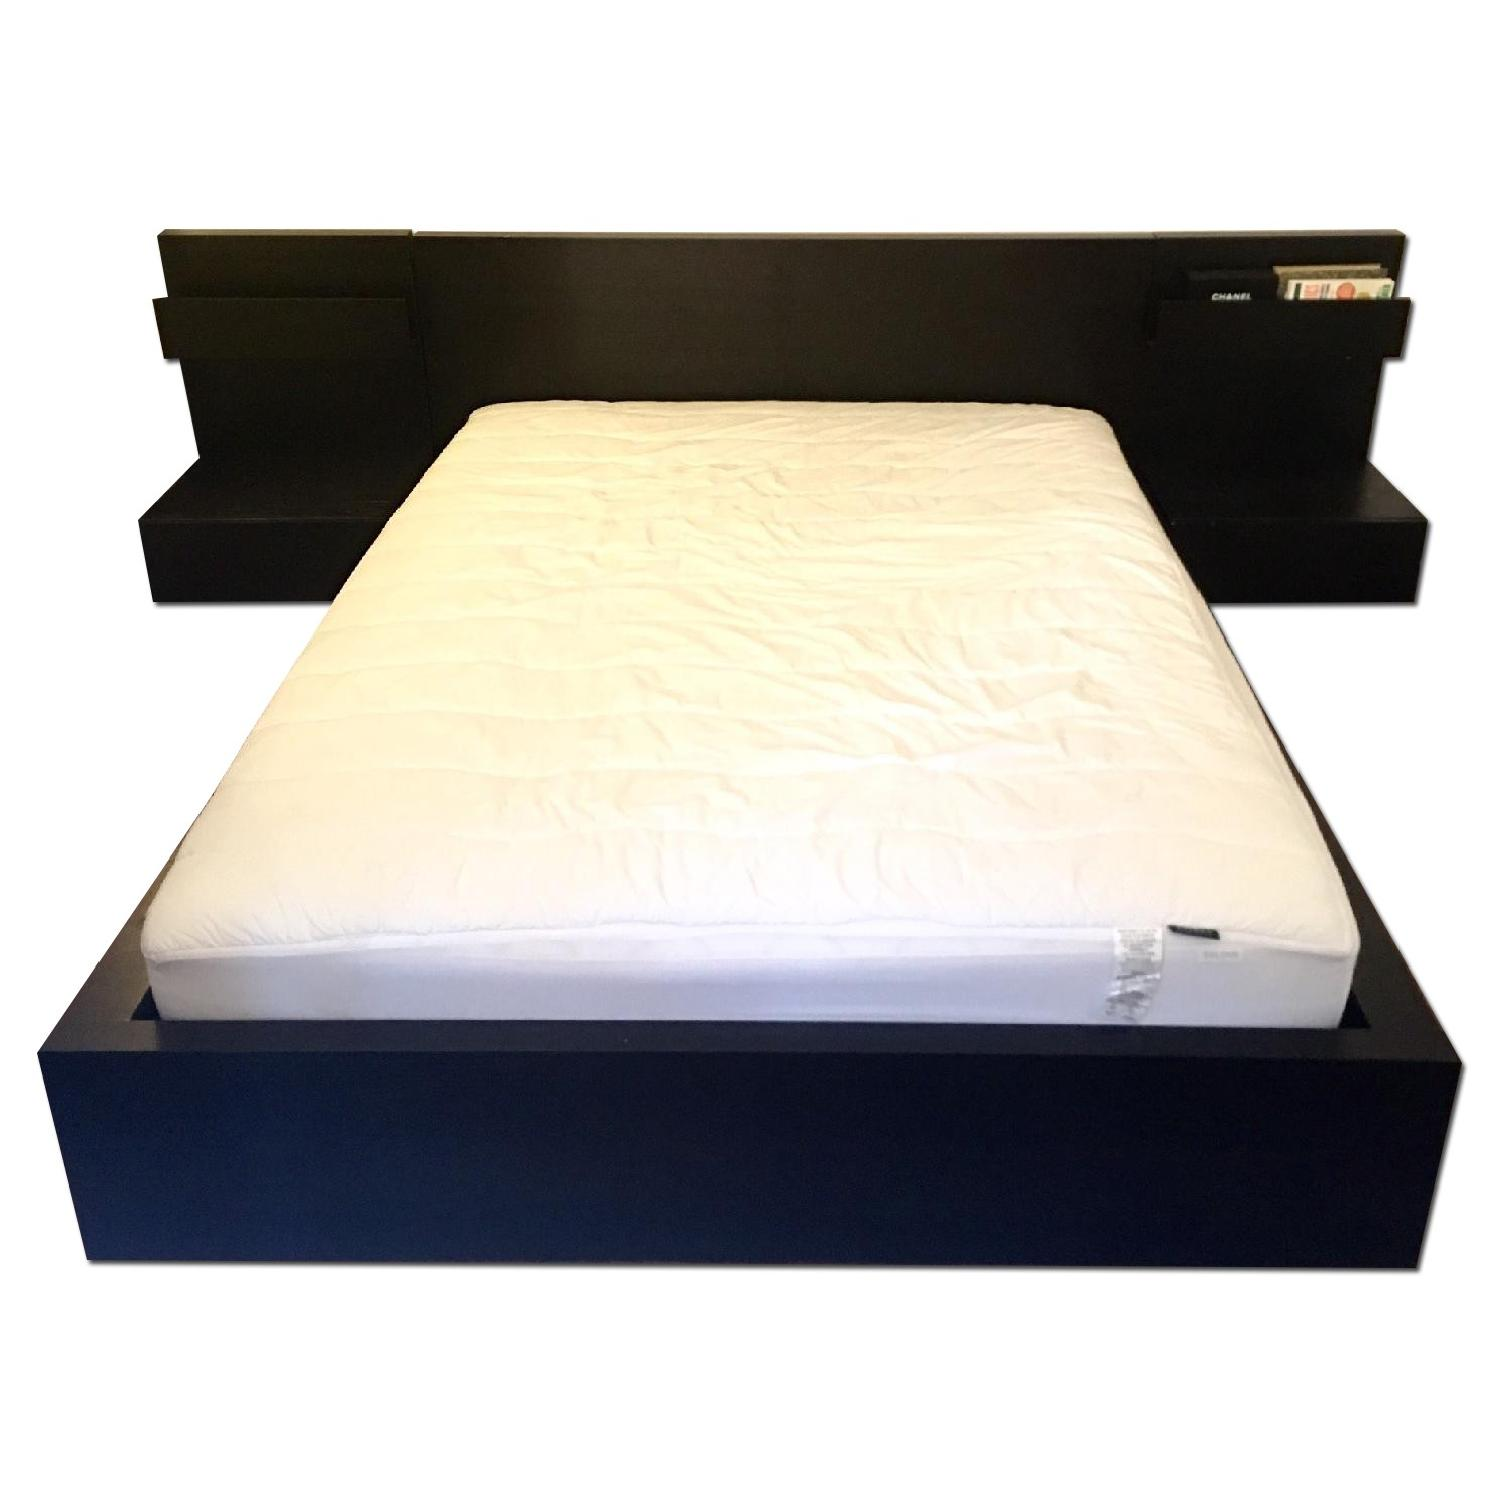 Ikea Malm Black Full Size Bed Frame w/ 2 Nightstands - image-0